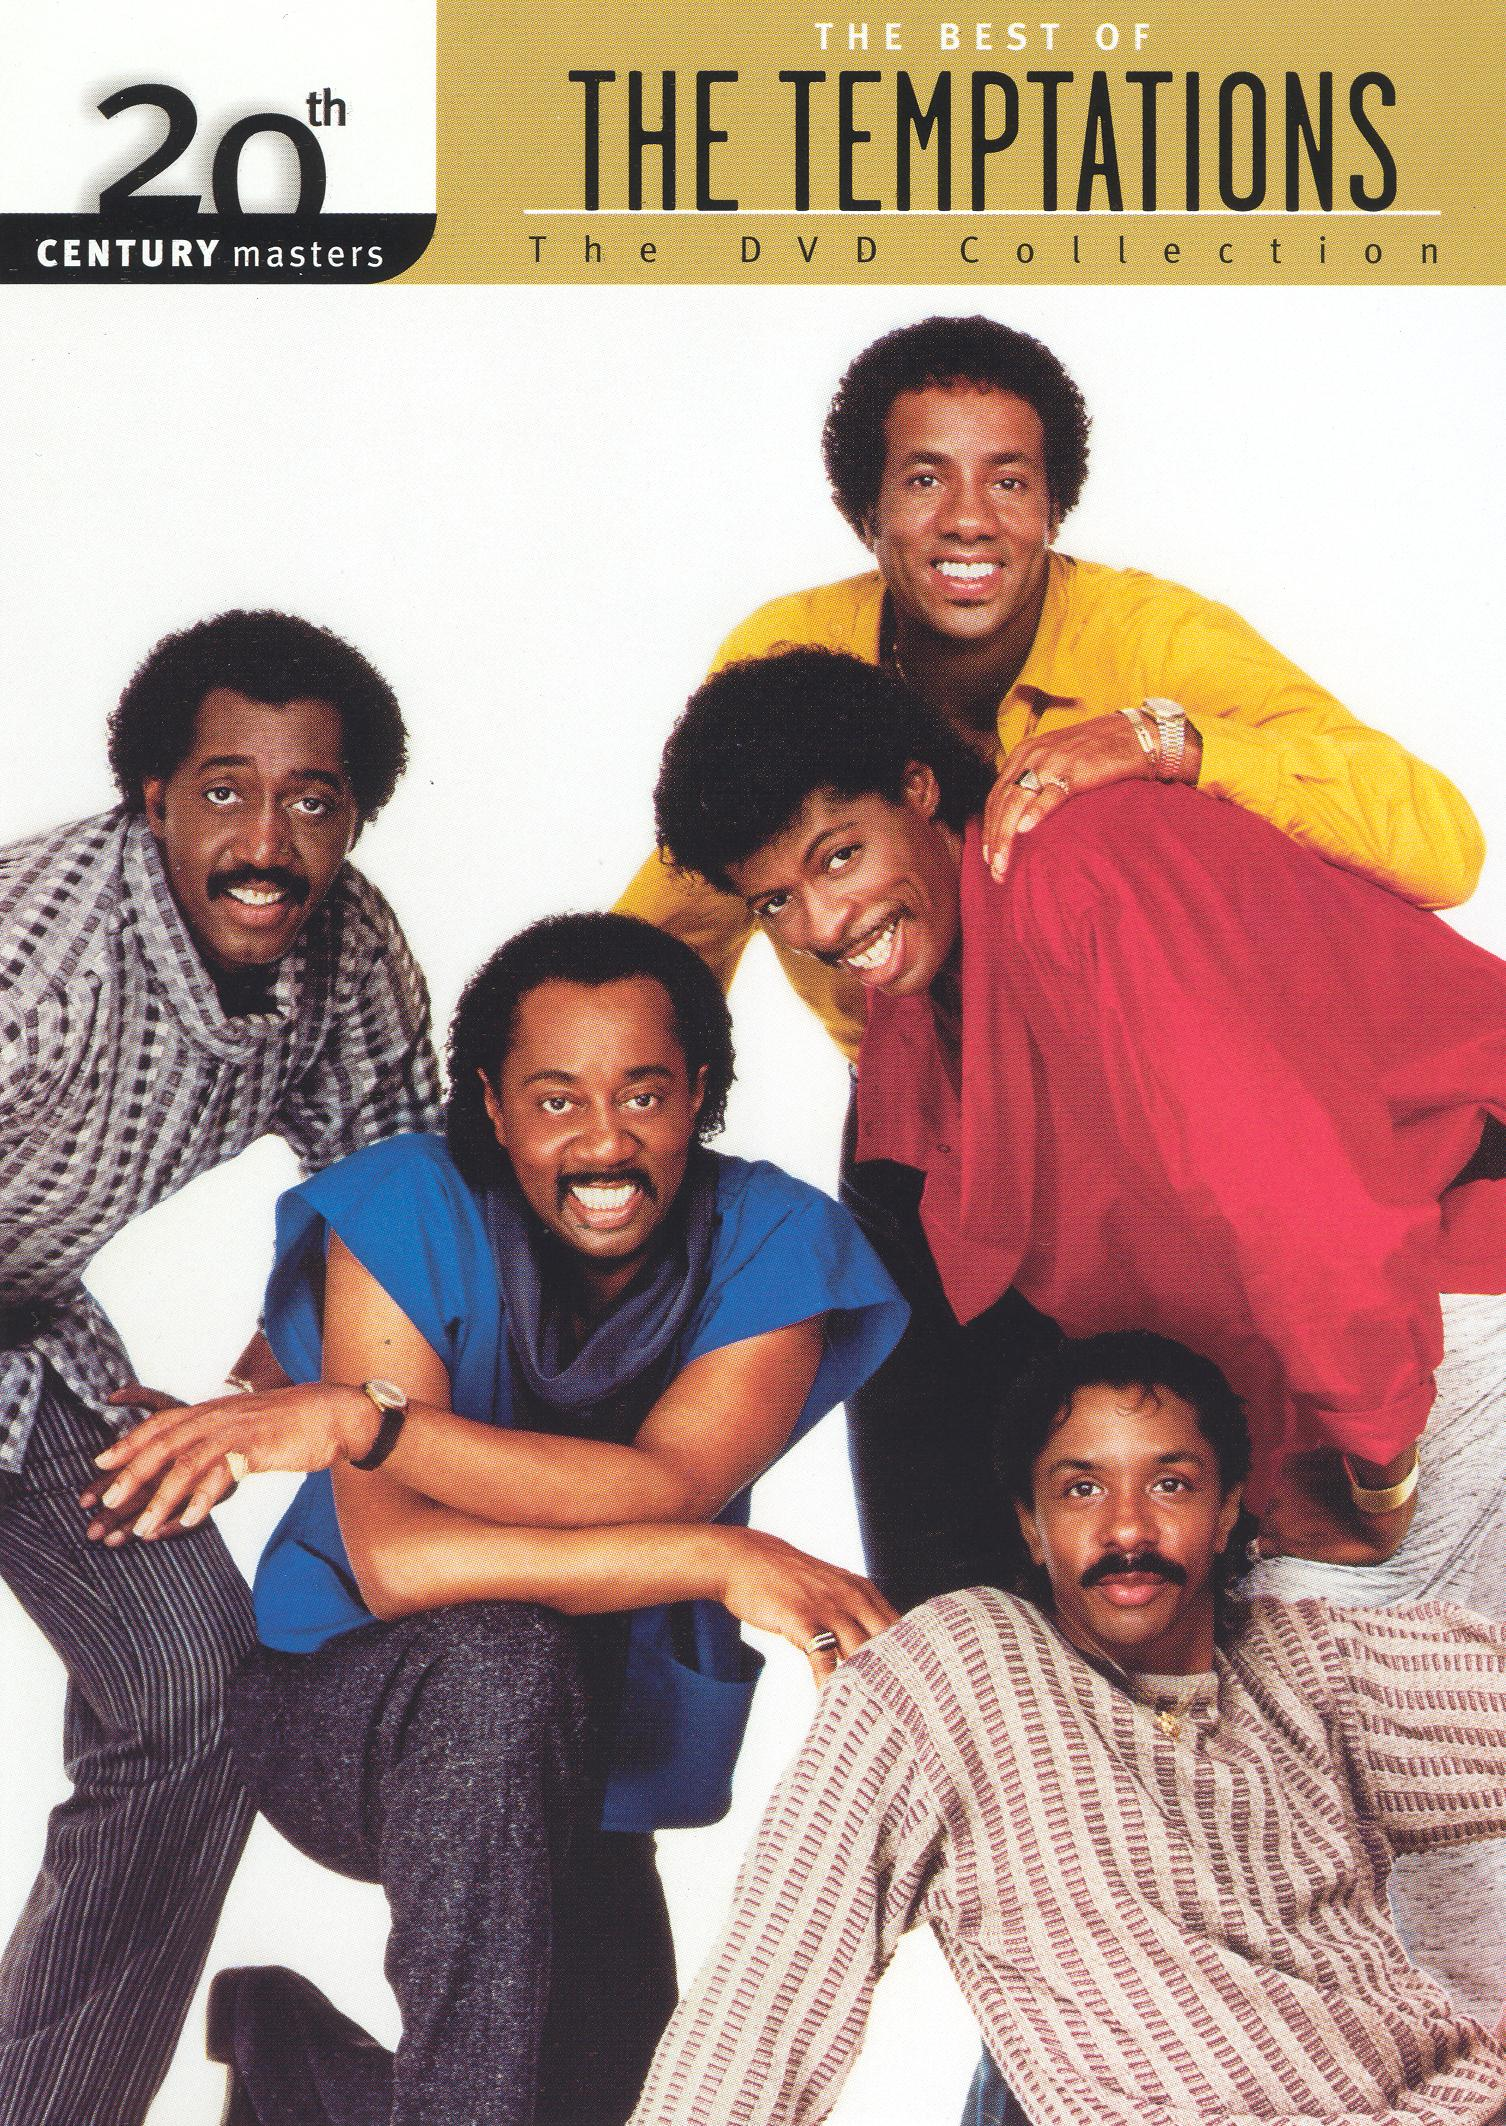 20th Century Masters: The Best of The Temptations